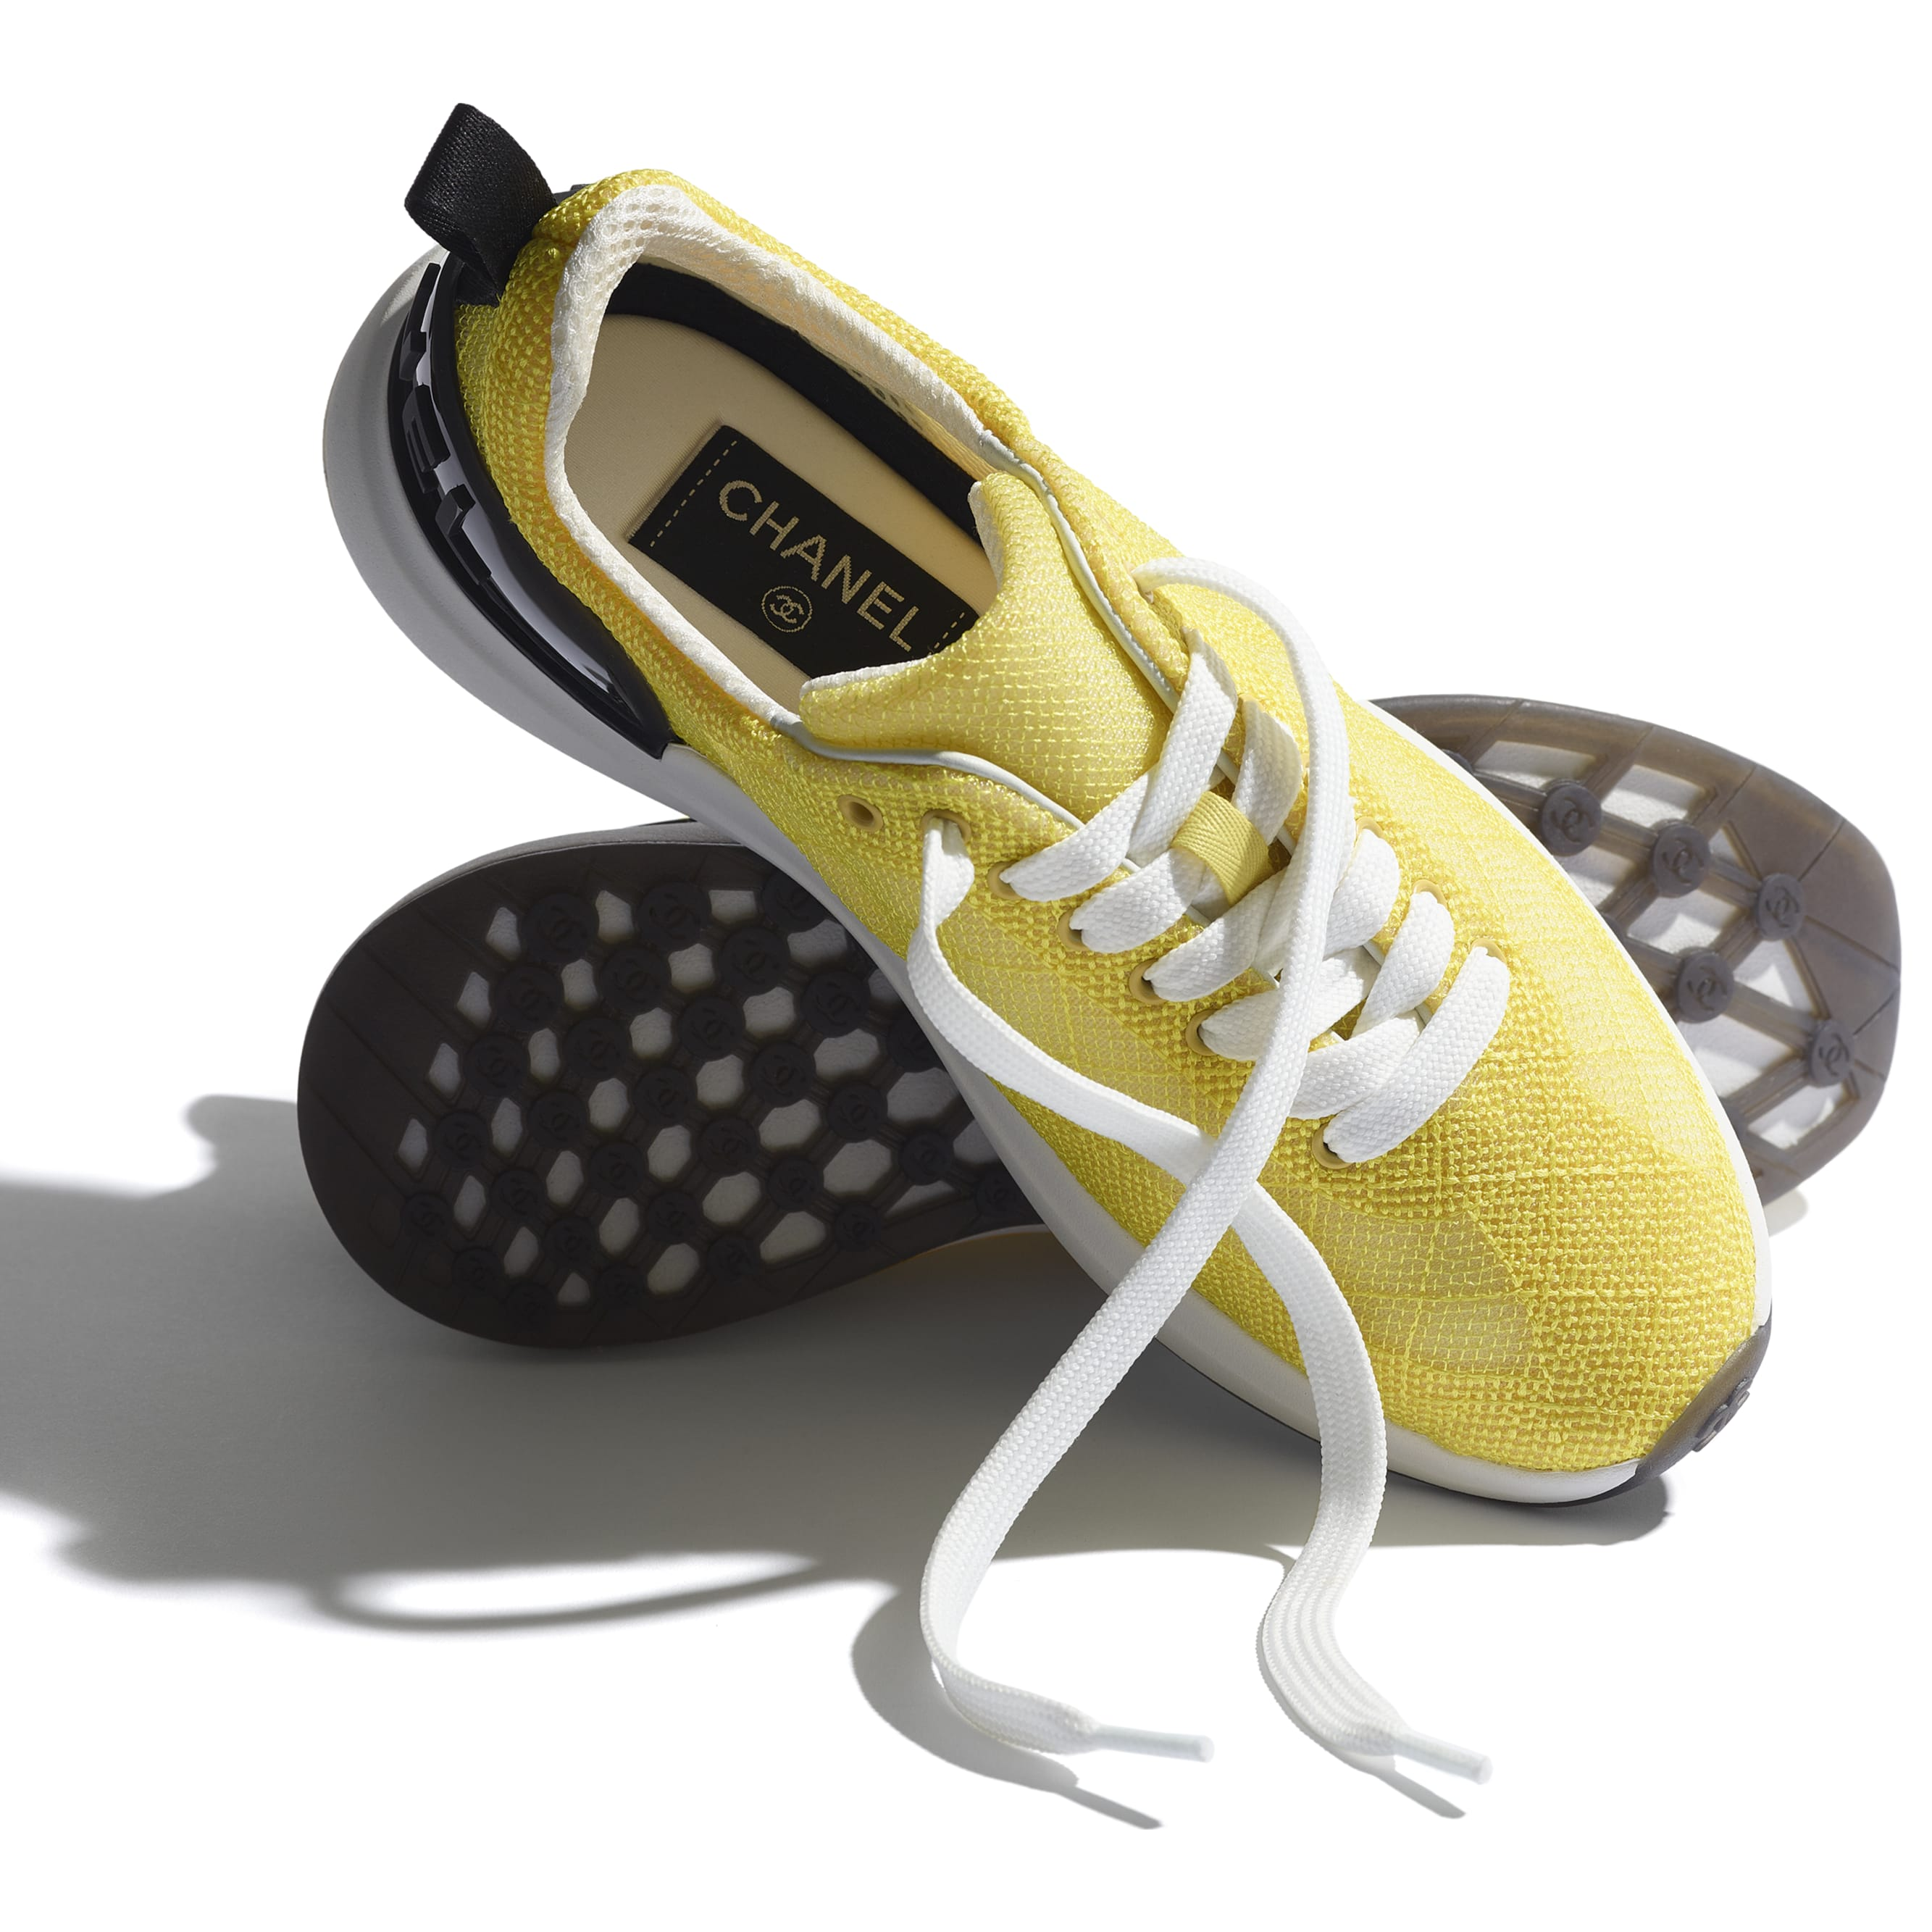 Trainers - Yellow - Embroidered Mesh - CHANEL - Extra view - see standard sized version